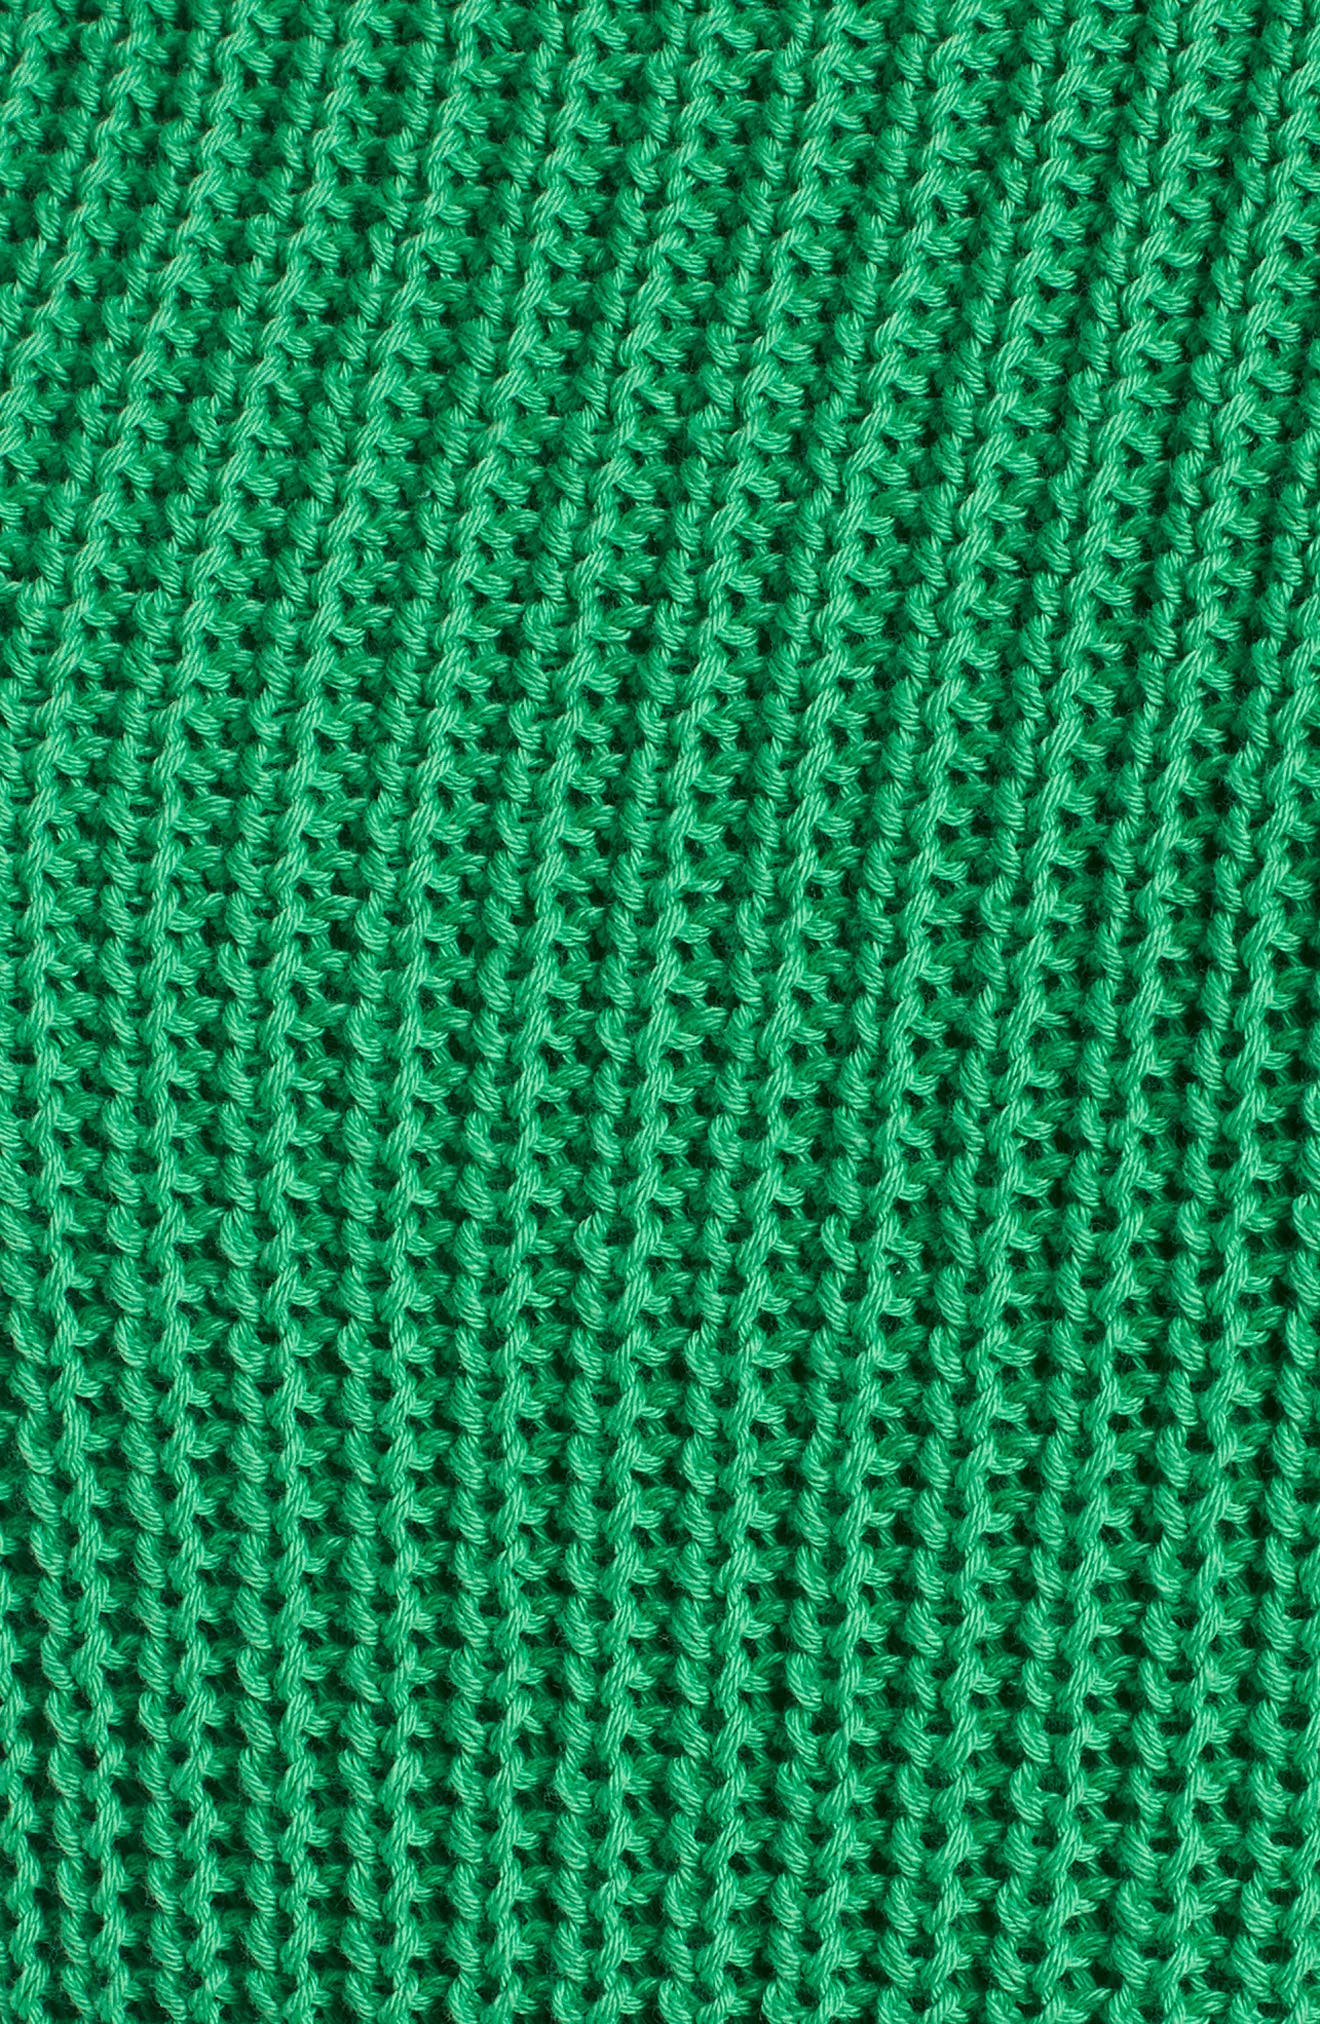 Shaker Stitch Cotton Sweater,                             Alternate thumbnail 5, color,                             Green Kelly